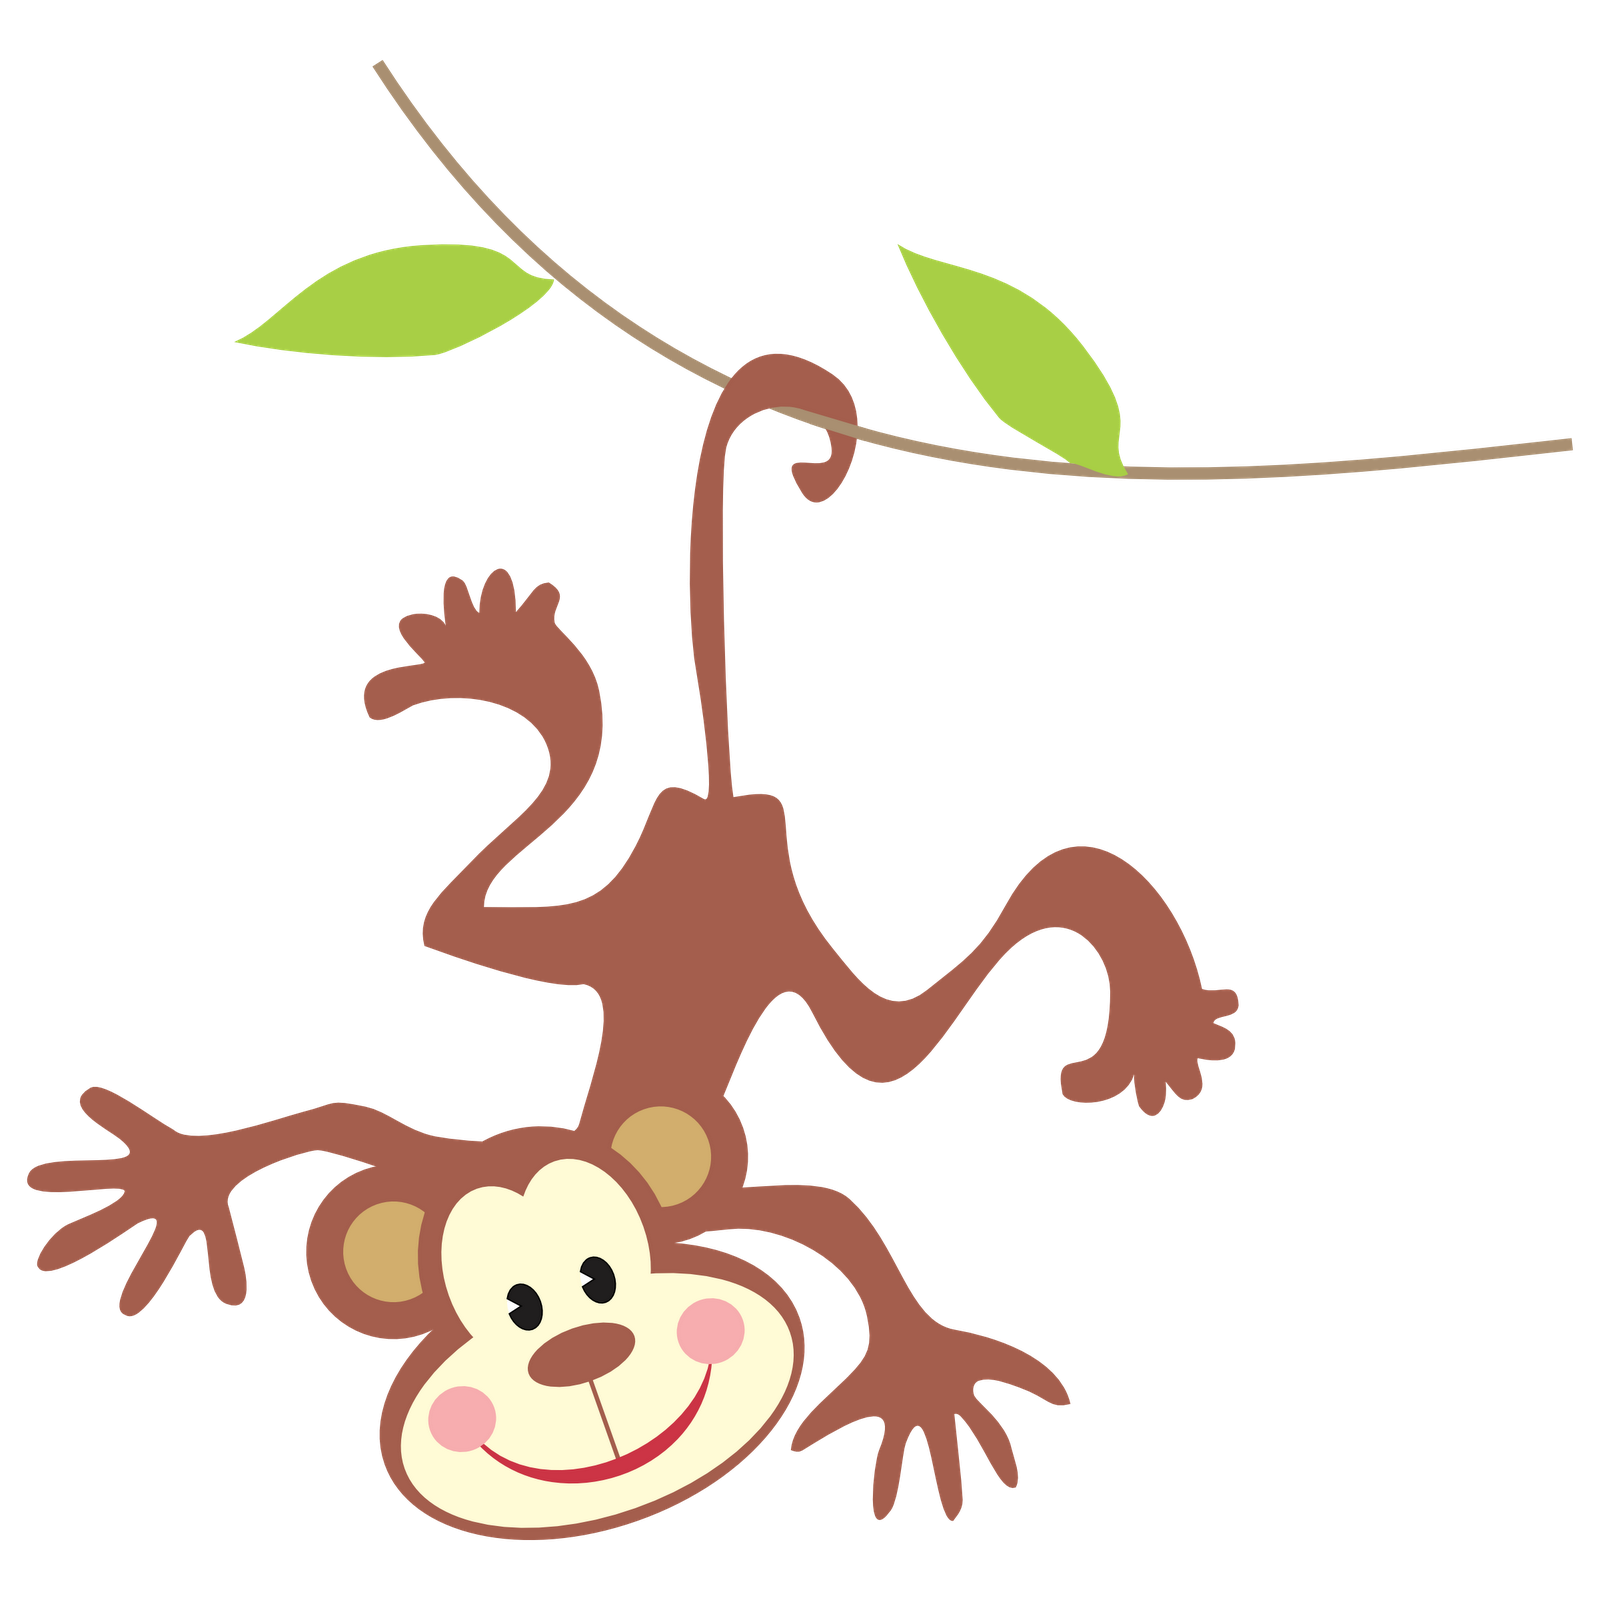 Monkey in tree clipart png transparent stock 28+ Collection of Hanging Monkey Clipart | High quality, free ... png transparent stock